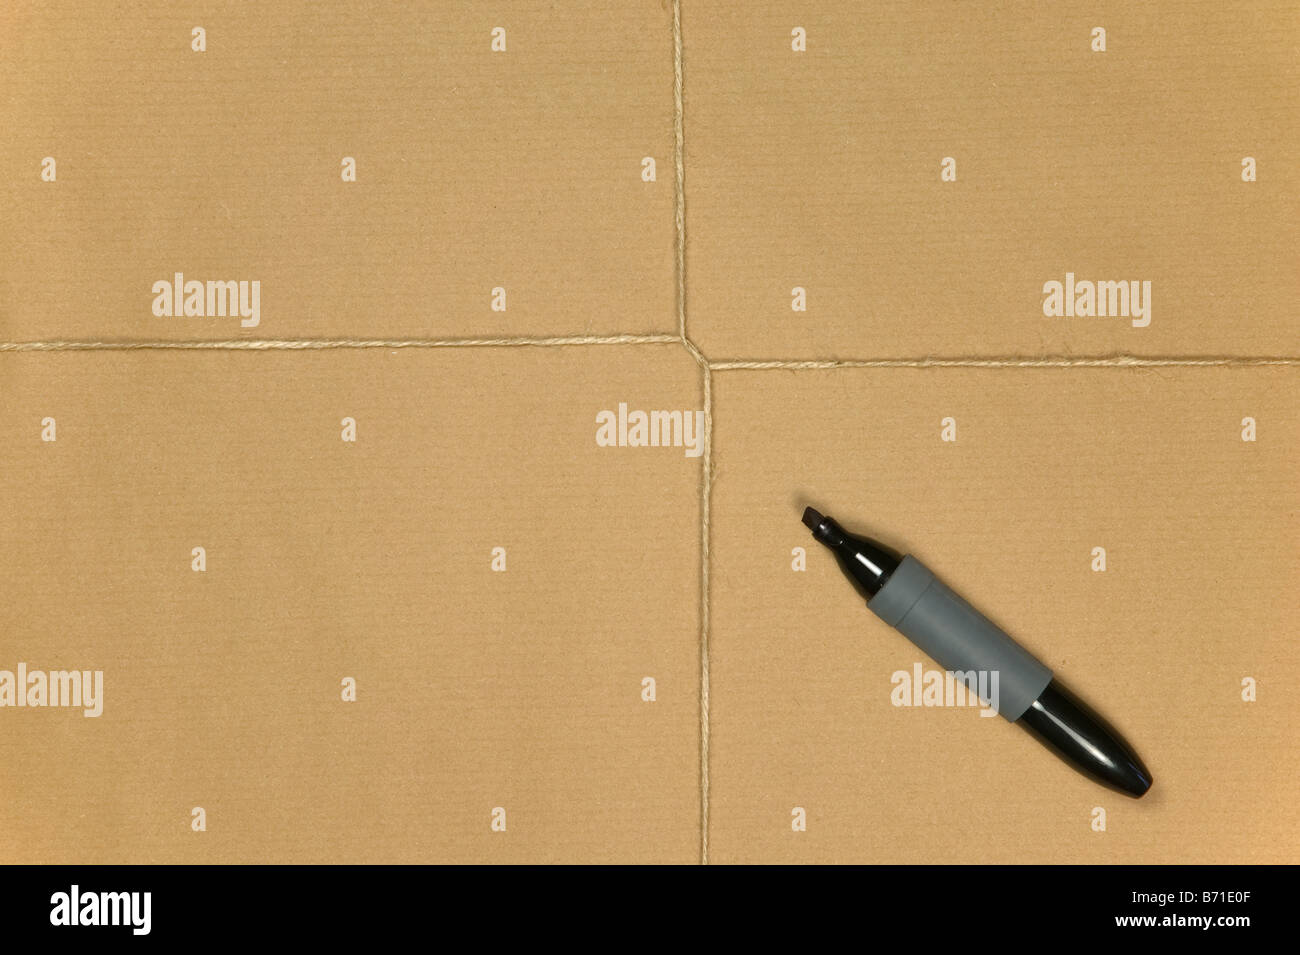 Blank brown paper parcel tied up with string and a marker pen - Stock Image